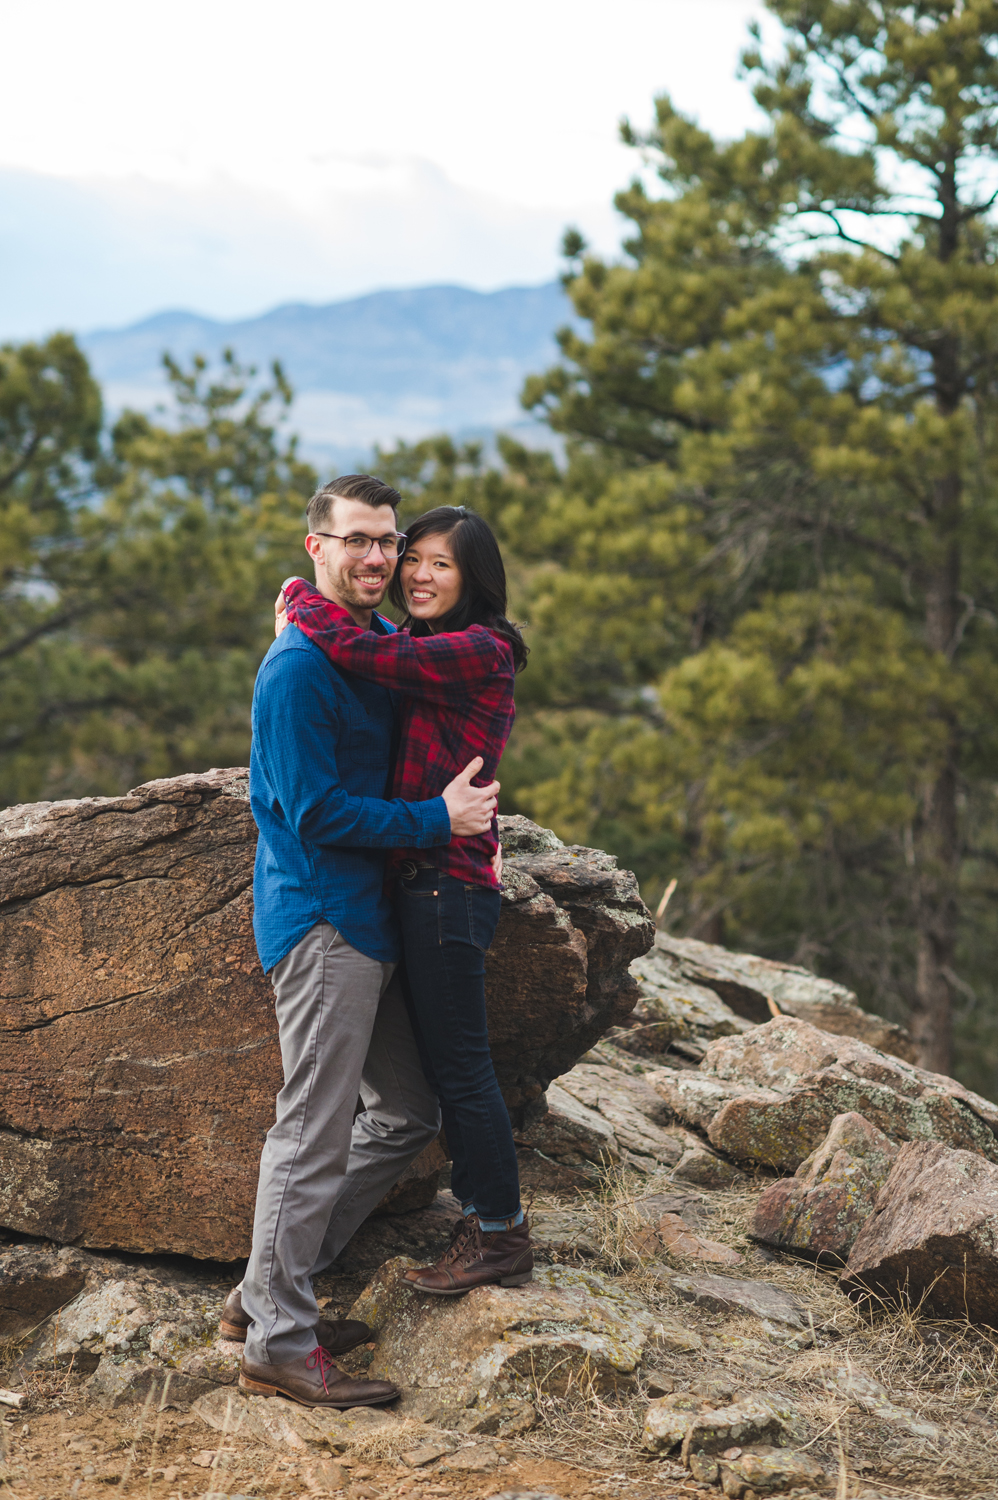 TiffanyandMark_Engaged_0988_squarespace.jpg